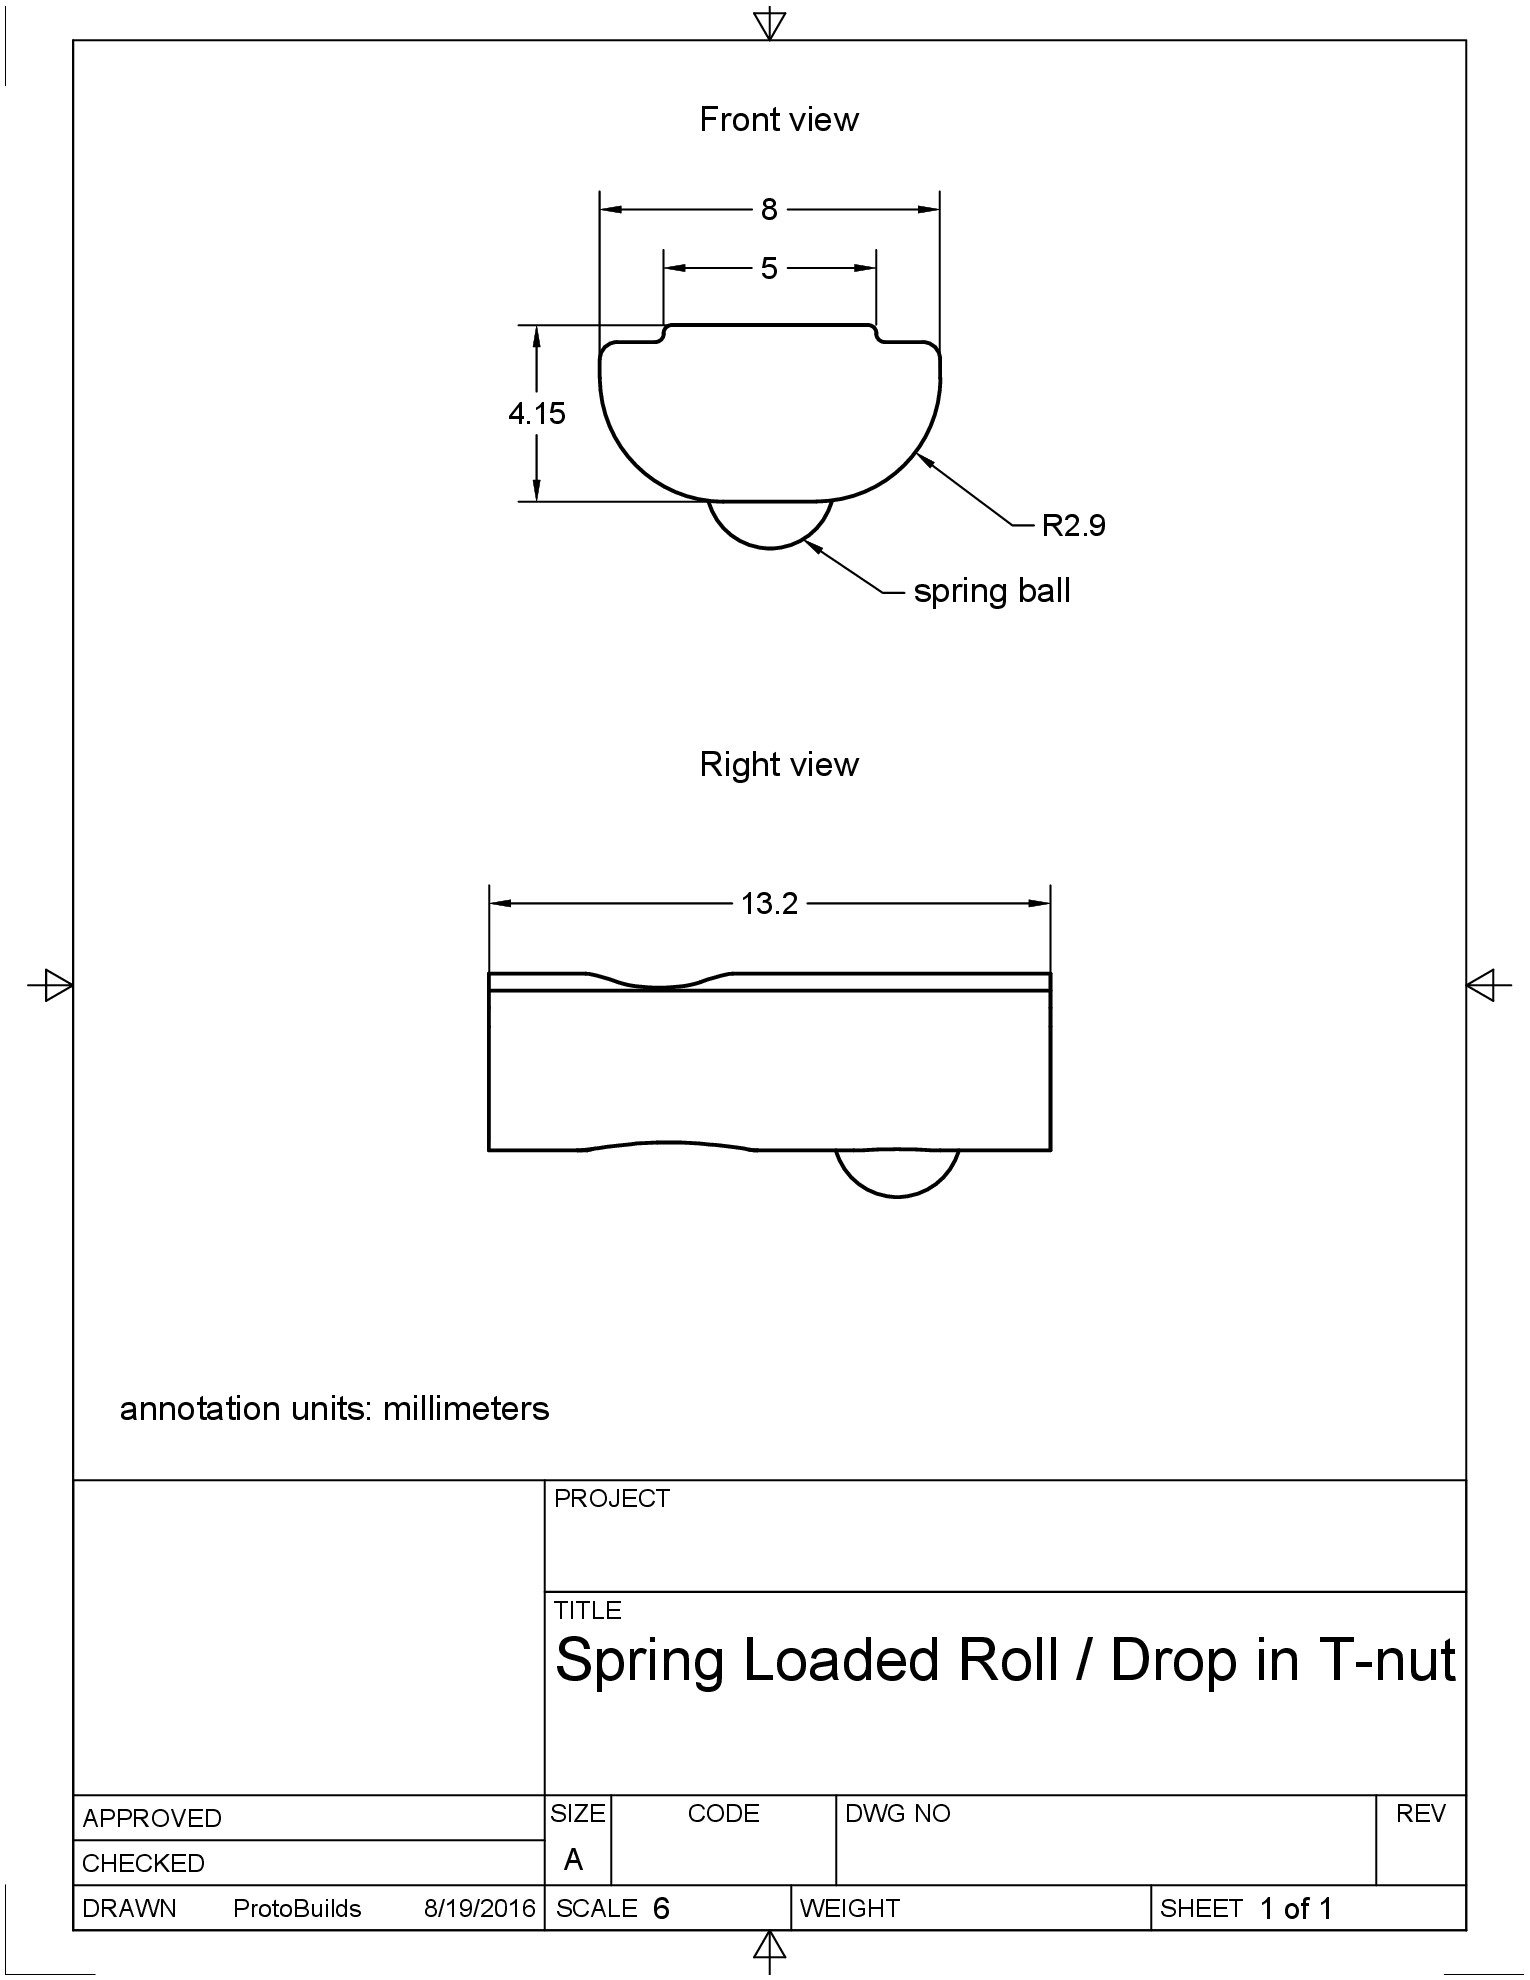 spring loaded drop in t-nut drawing image